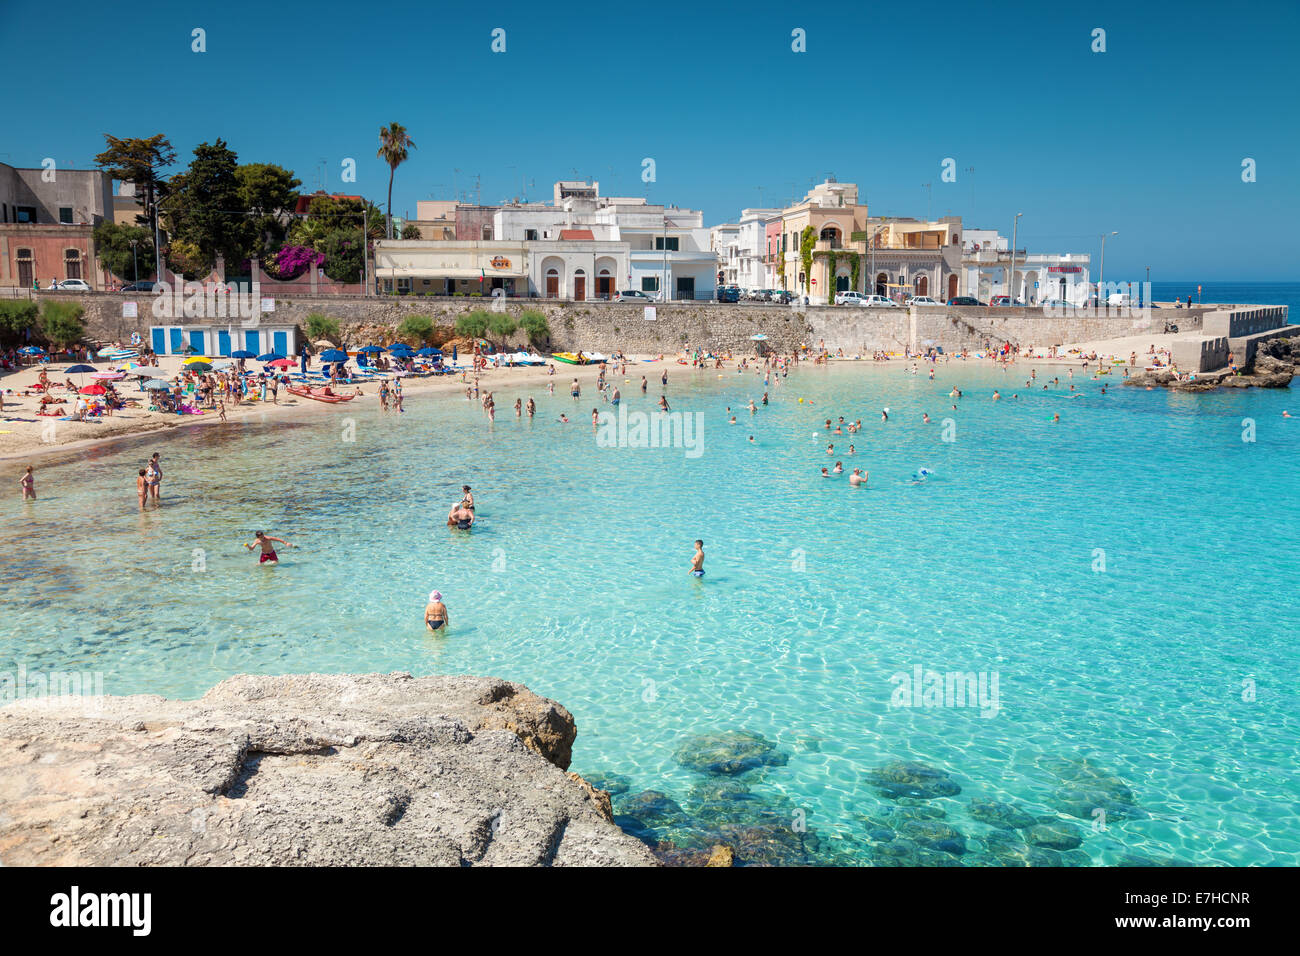 Santa maria al bagno city beach in puglia italy stock photo 73527267 alamy - Cloe santa maria al bagno ...